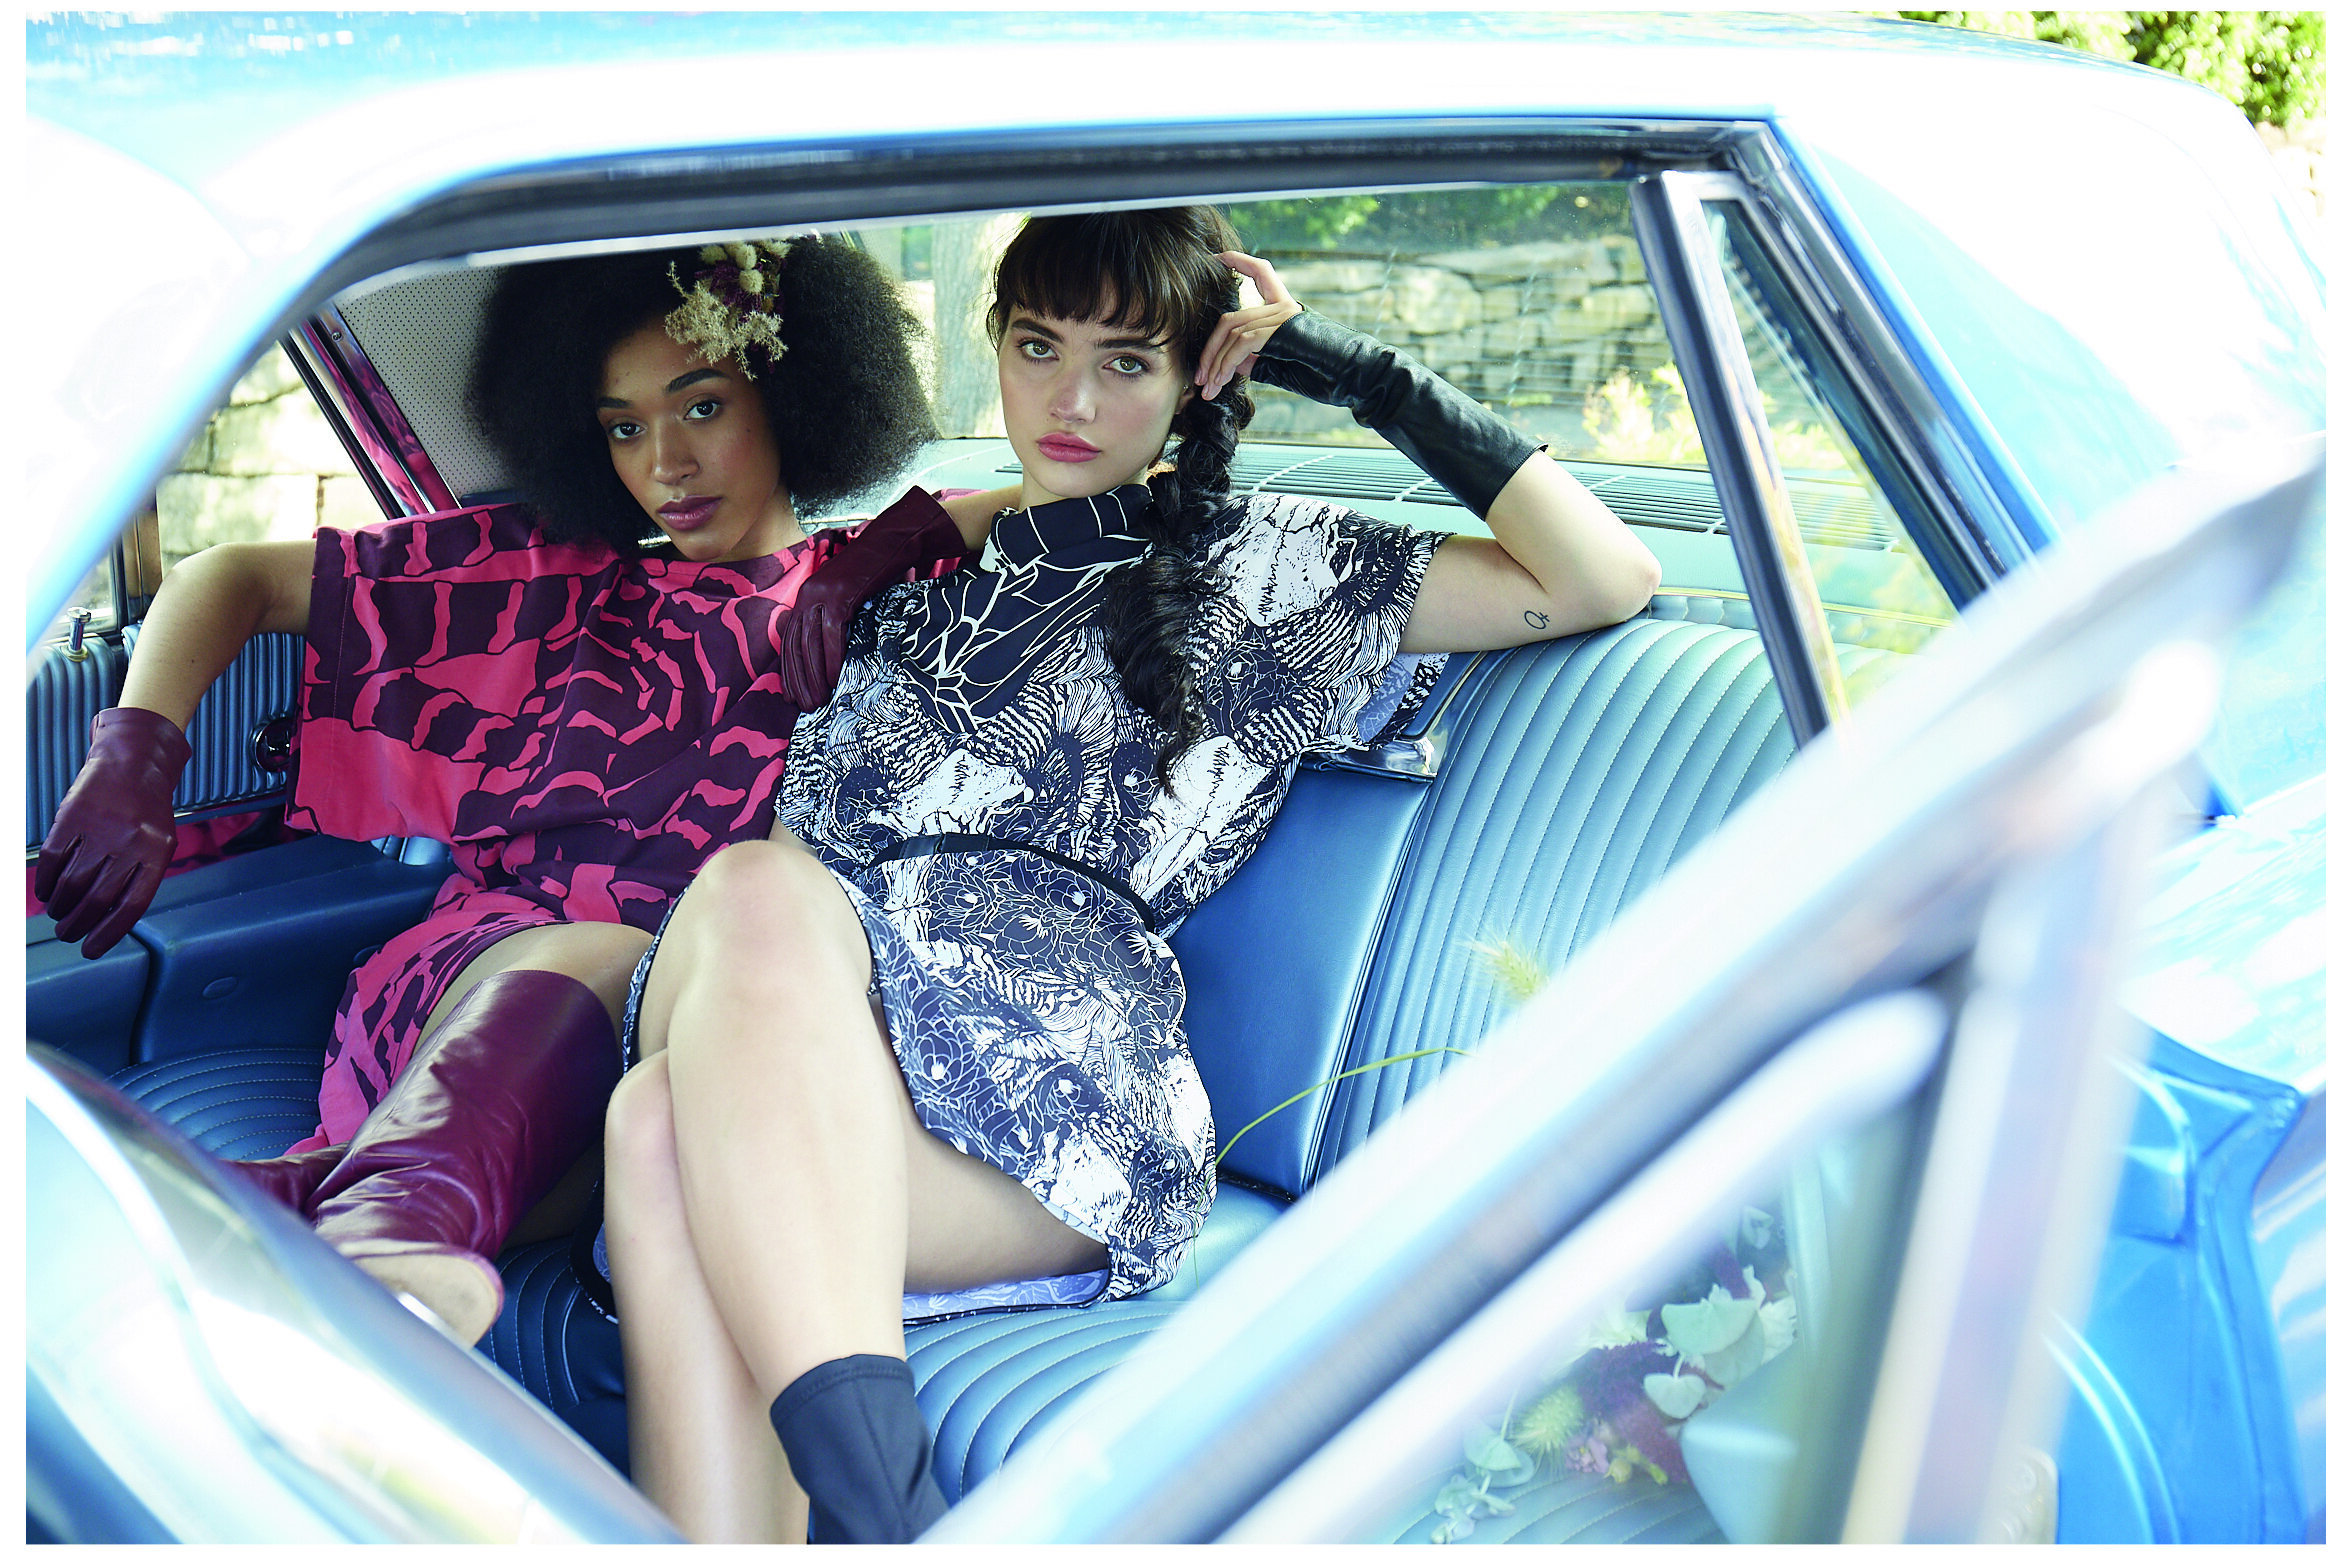 corduory lookbook in car.jpg